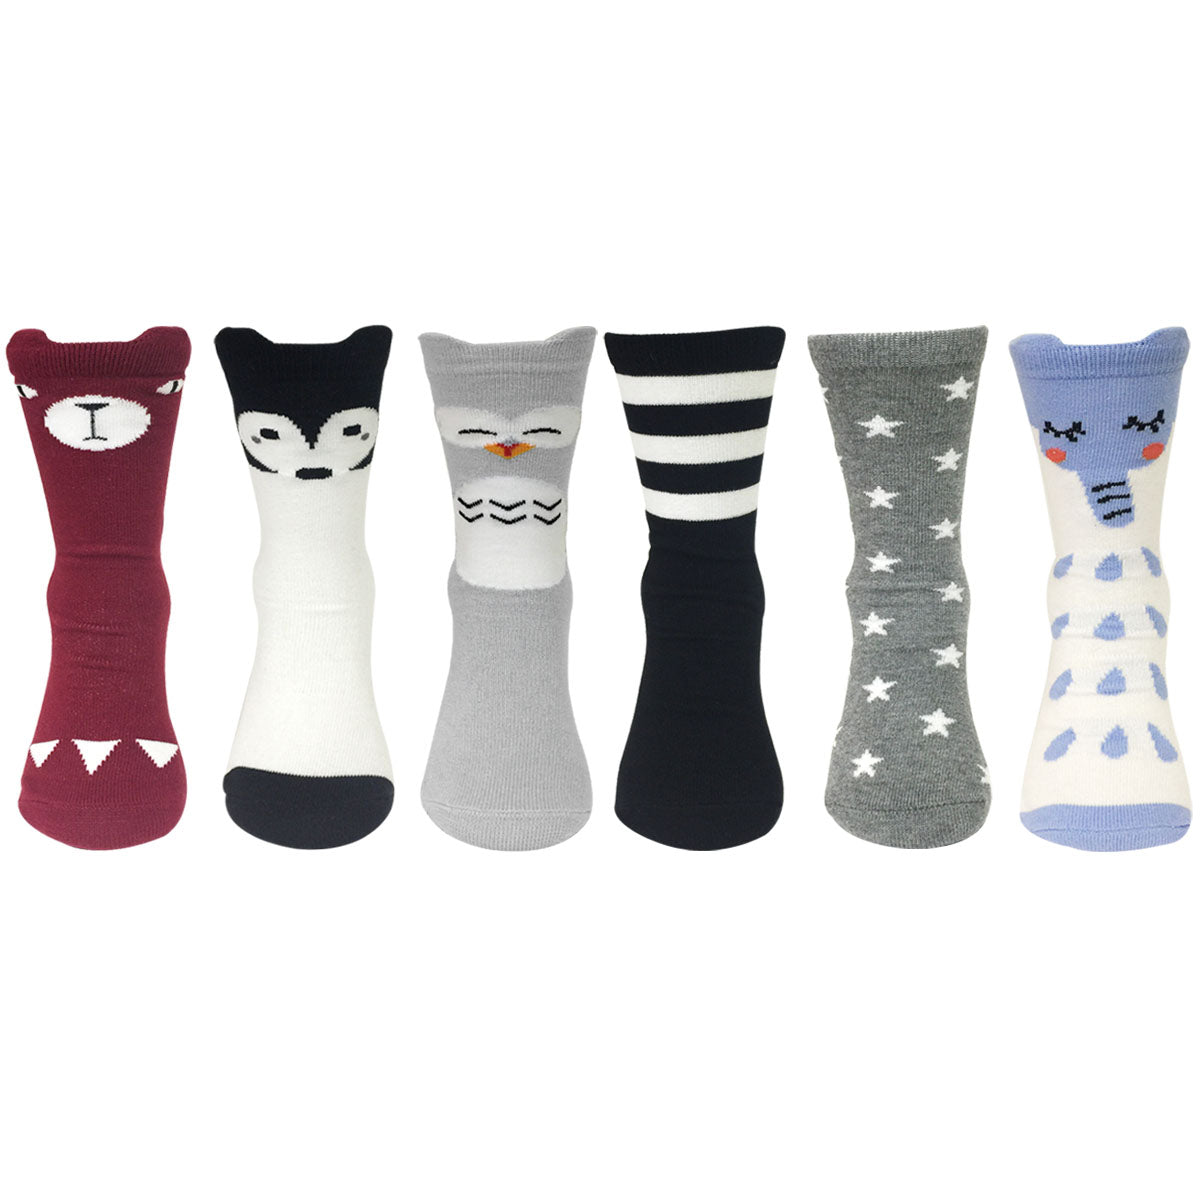 Wrapables My Best Buddy Socks for Baby (Set of 6), Nocturnal Friends